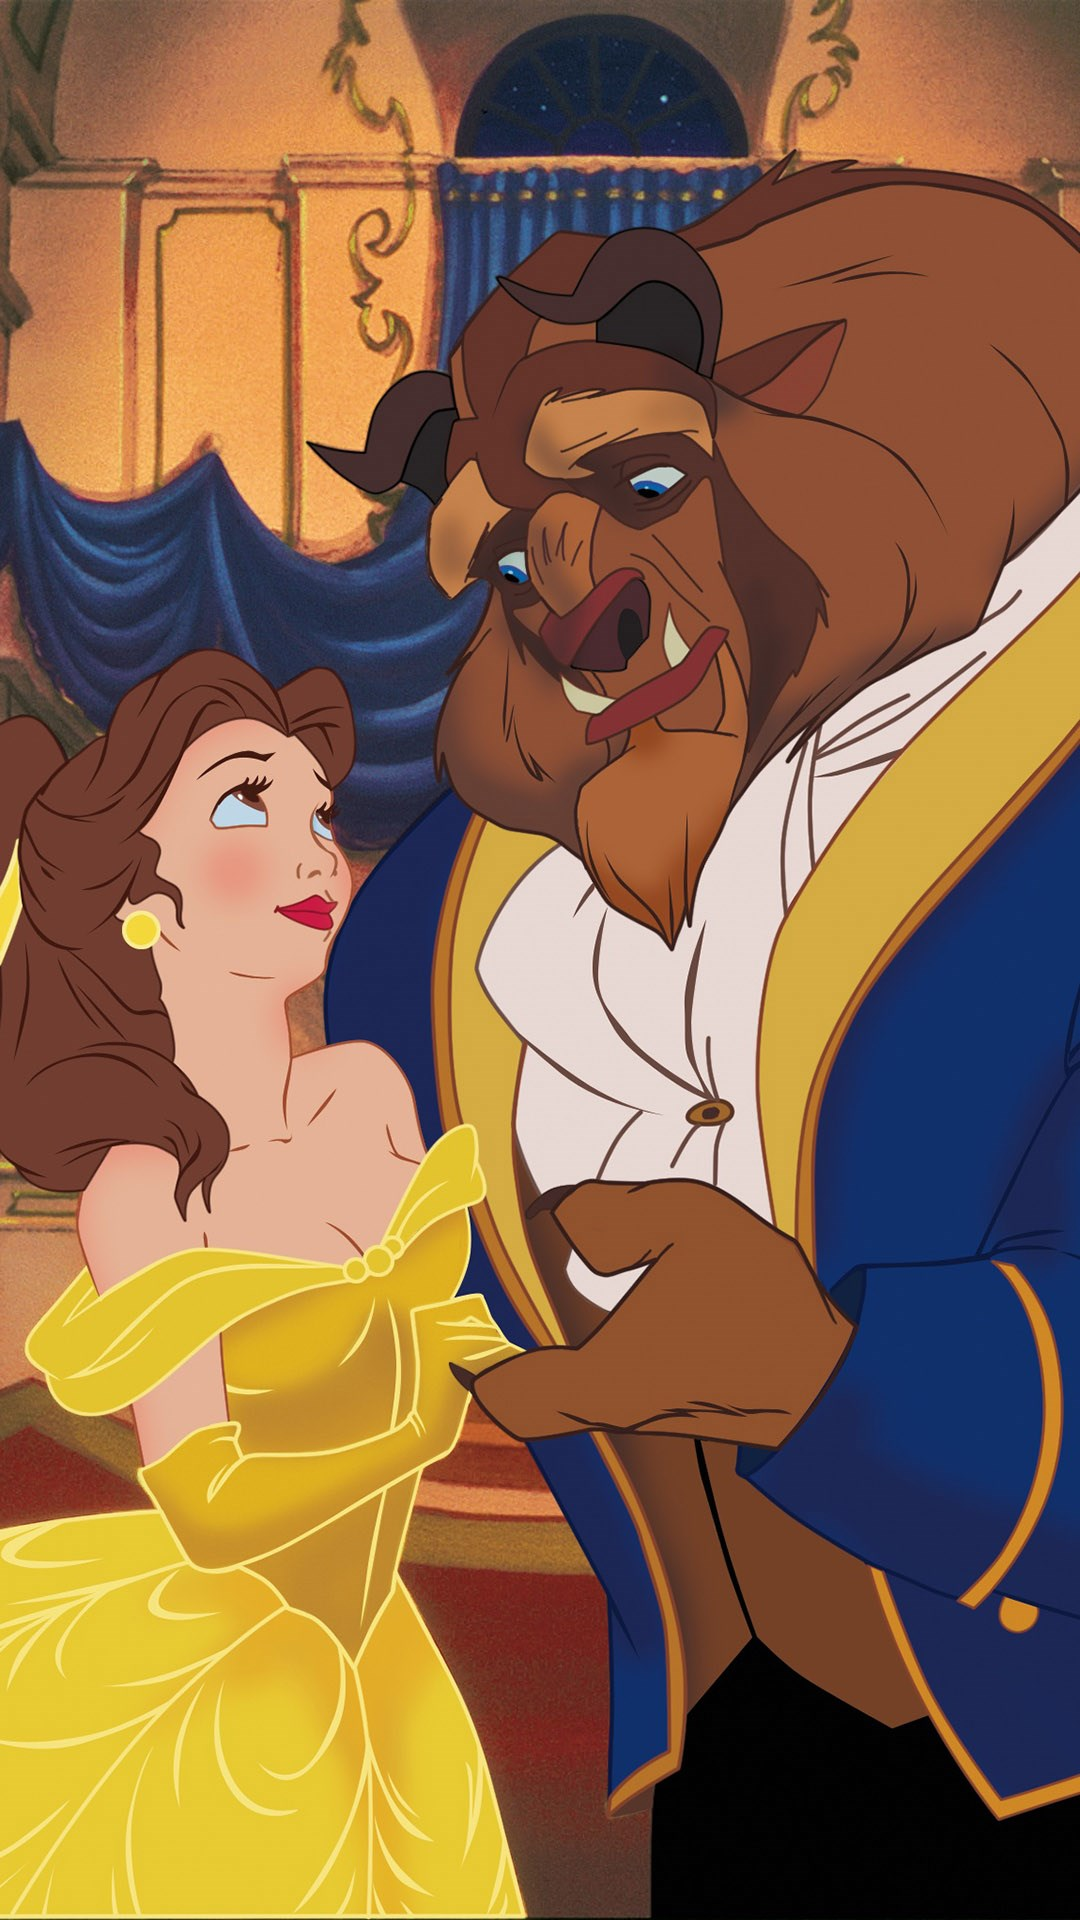 Beauty-And-The-Beast-Dancing-Anime-Love-Fairy-iPhone-wallpaper-wp5204527